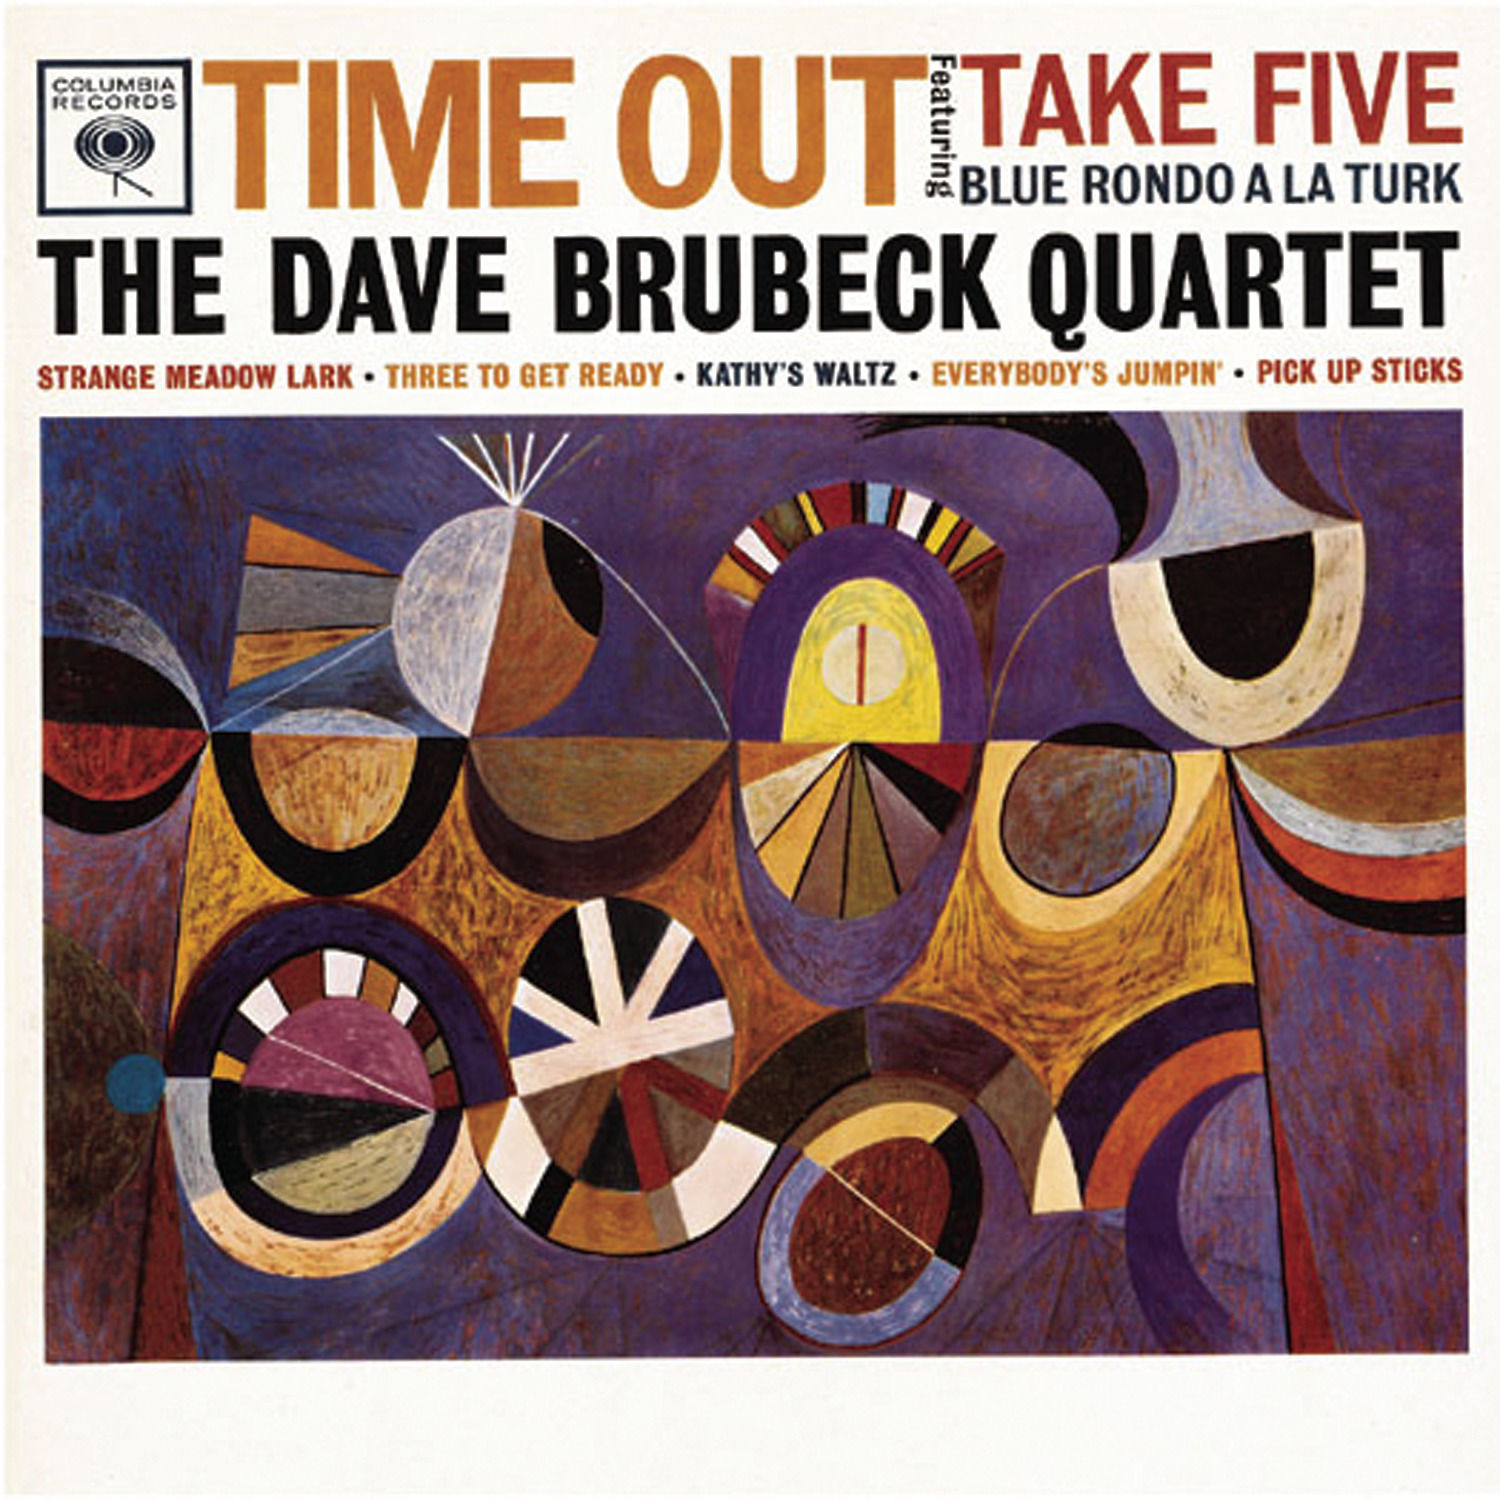 The Dave Brubeck Quartet Time Out.jpg